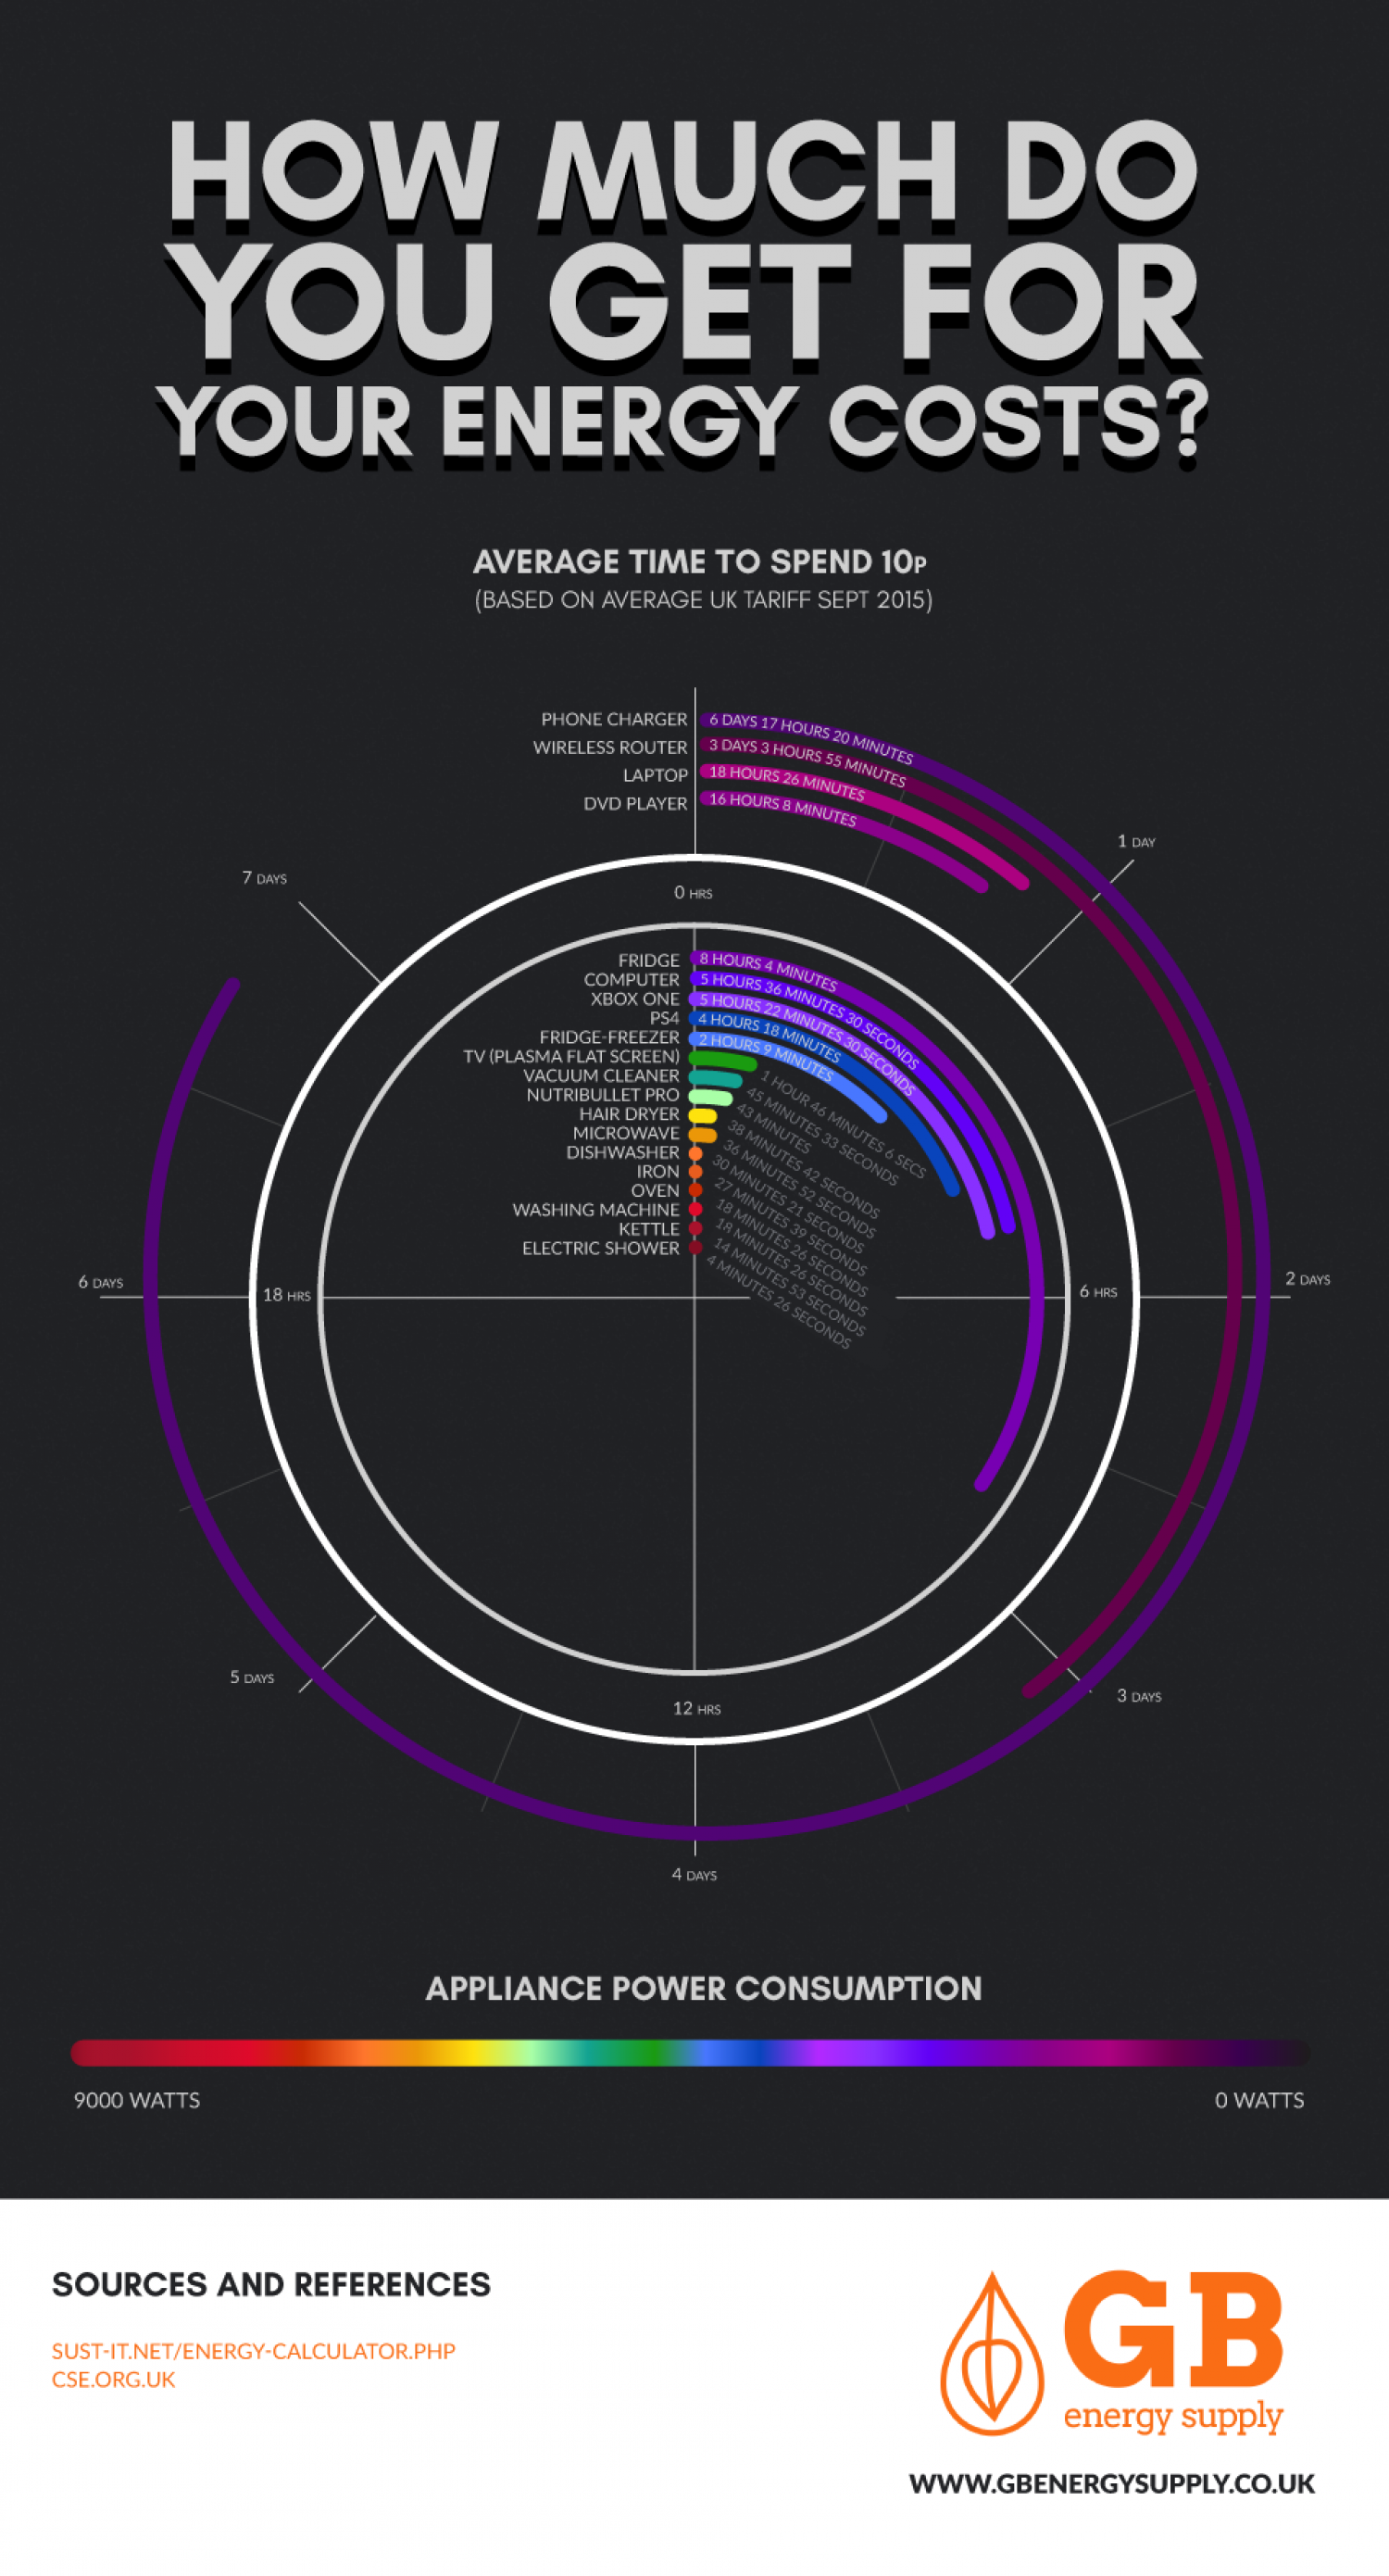 How Much Do You Get For Your Energy Costs? Infographic